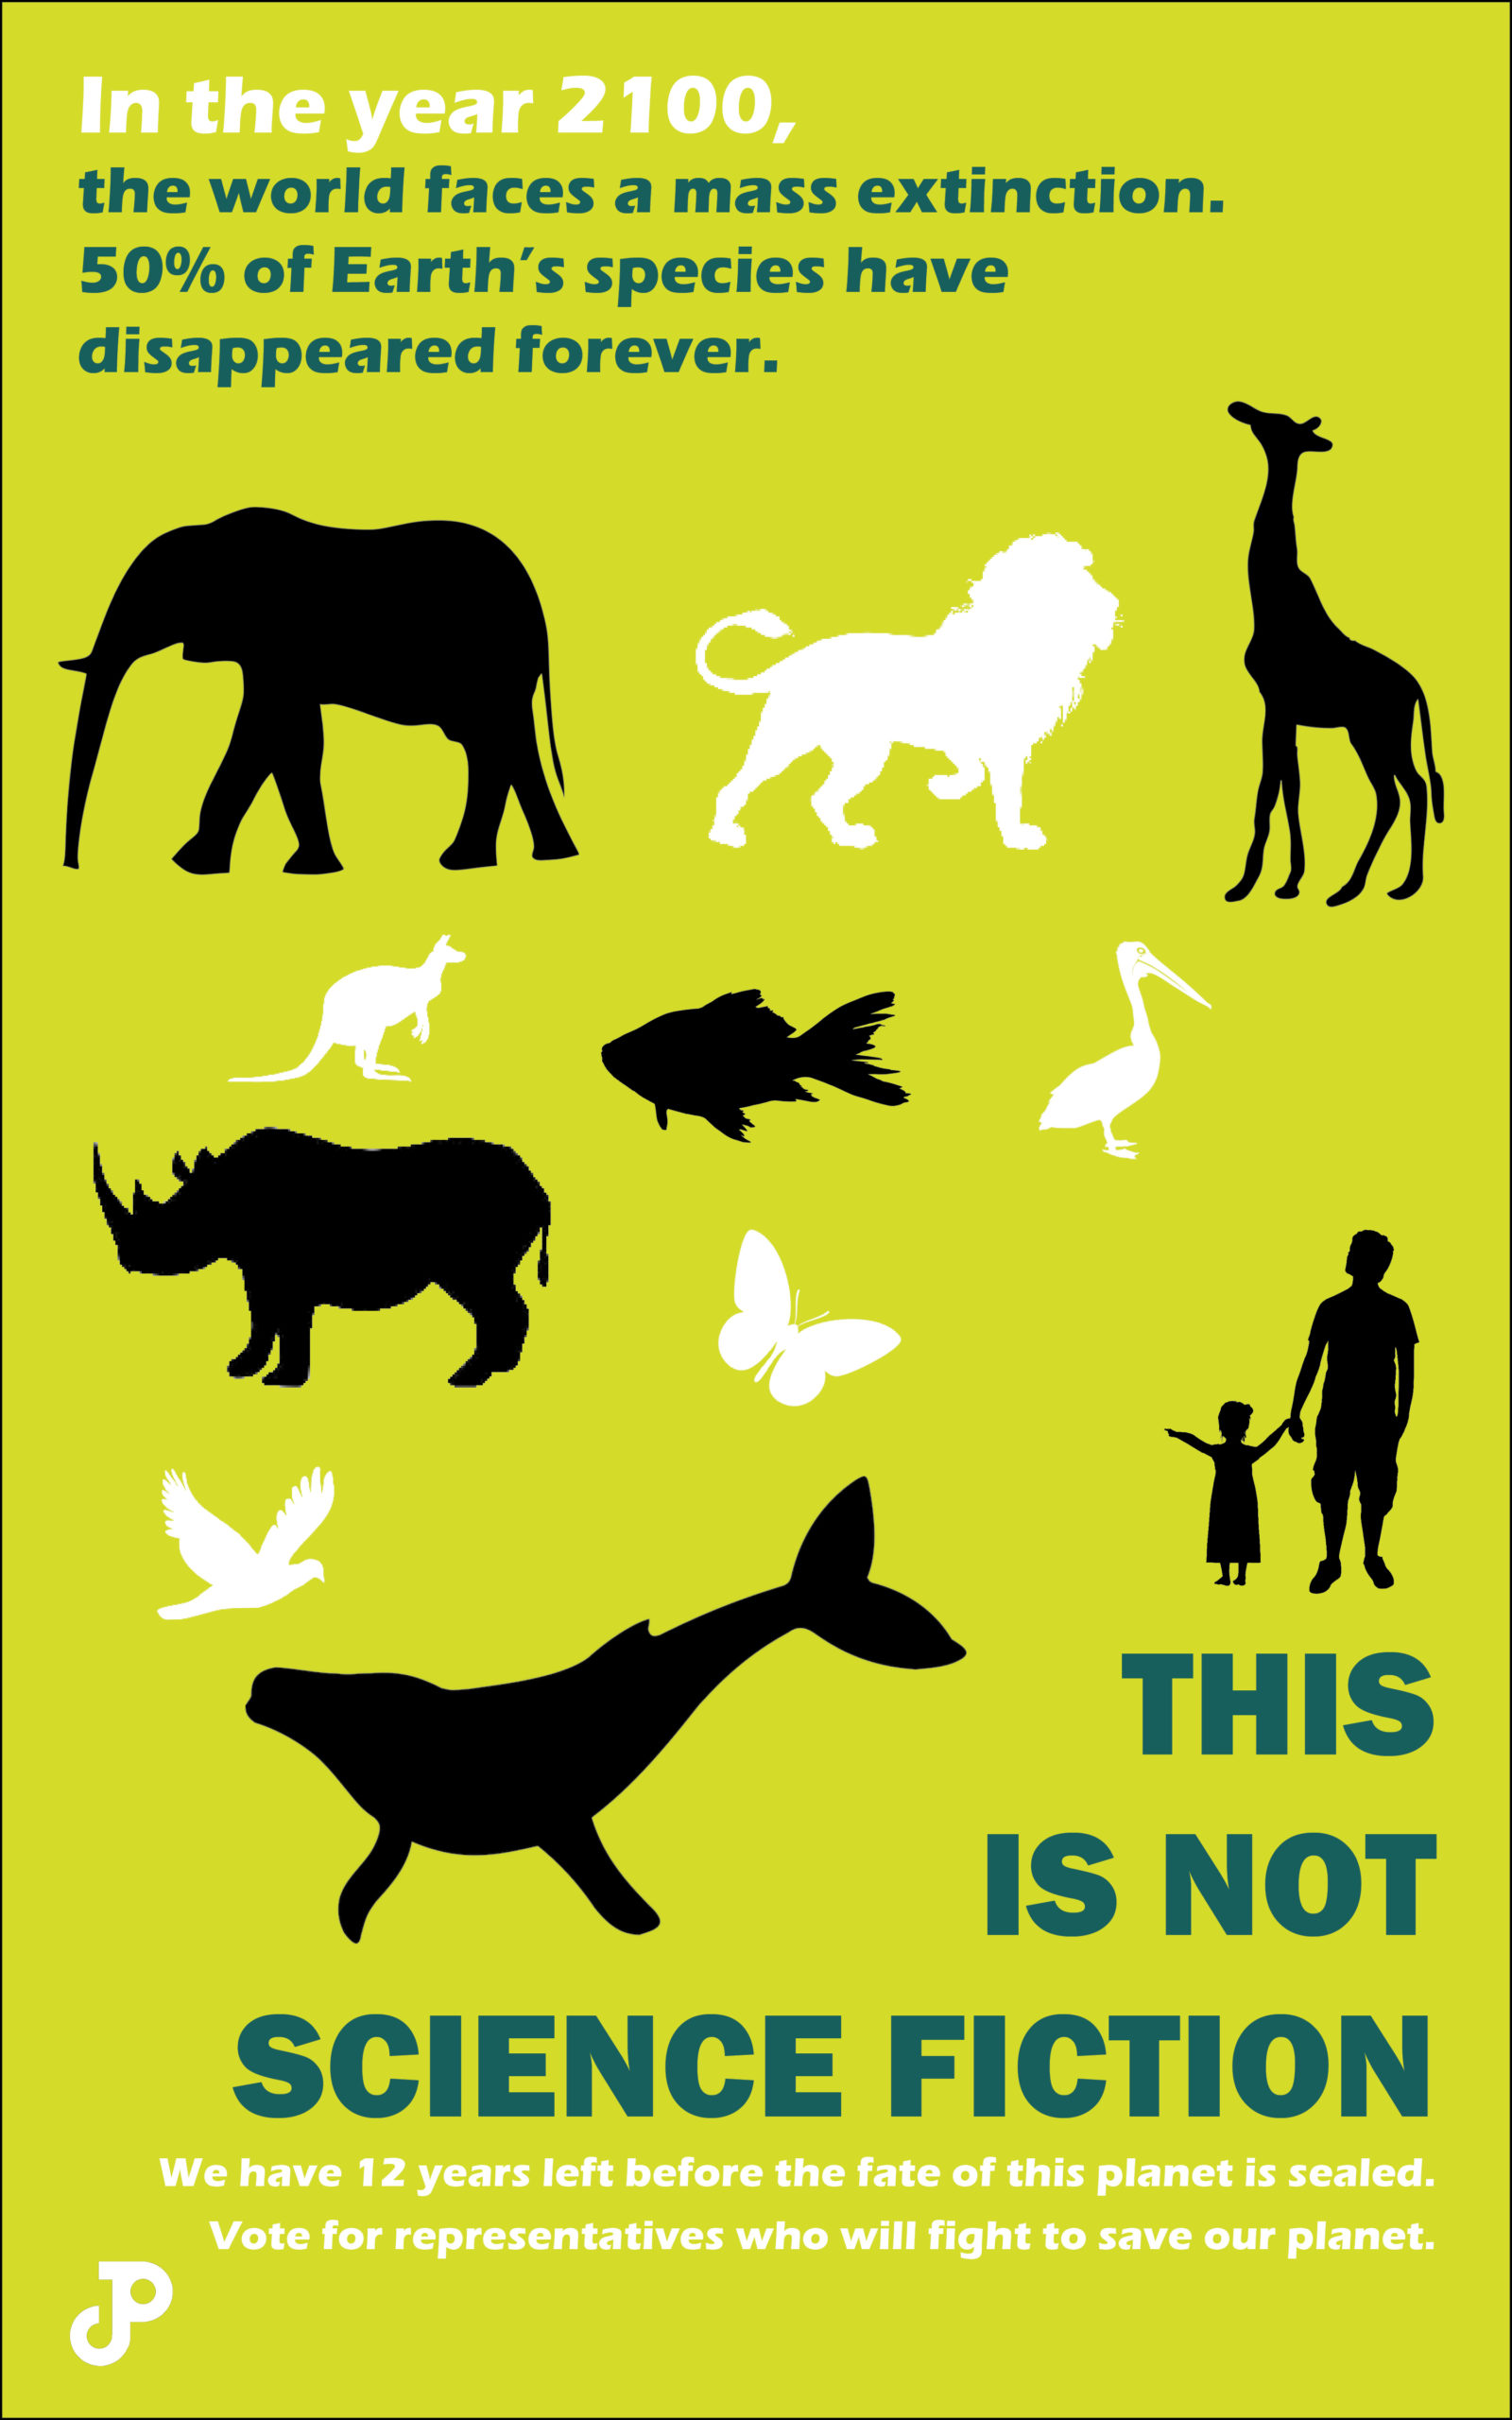 a poster with an illustration of a parent and small child observing various animals, half of which are colored white, the other half colored black. The text reads, in the year 2100, the world faces a mass extinction. 50 percent of Earth's species have disappeared forever. This is not science fiction. We have 12 years left before the fate of this planet is sealed. Vote for representatives who will fight to save our planet.